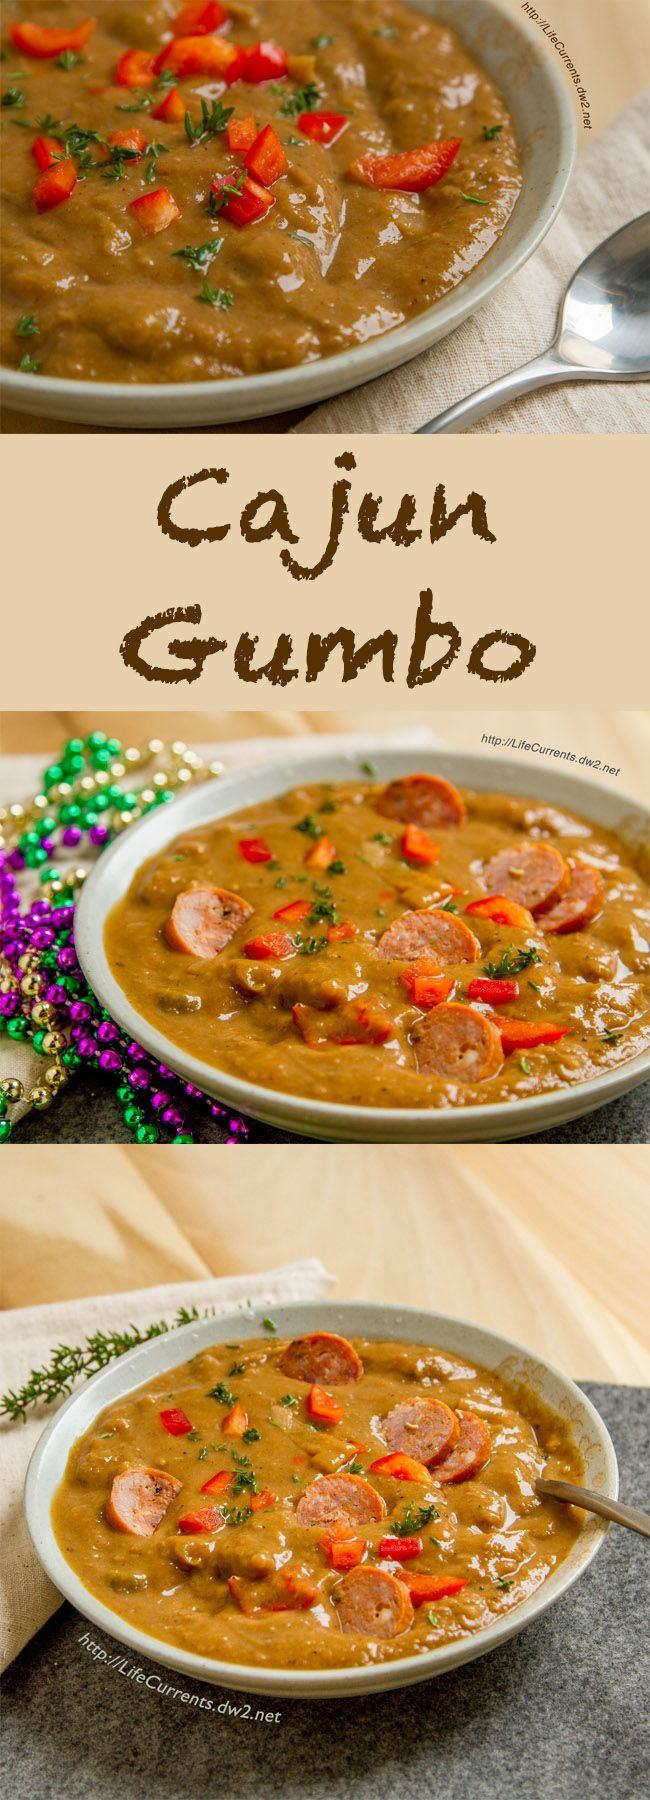 "Dan's World Famous Gumbo is awesome comfort food! It could also be called ""As you like it Gumbo"" because it starts with a delicious vegetarian Gumbo base, and you can add in whatever you like, shrimp, chicken, Andouille sausage, or veggie sausage."